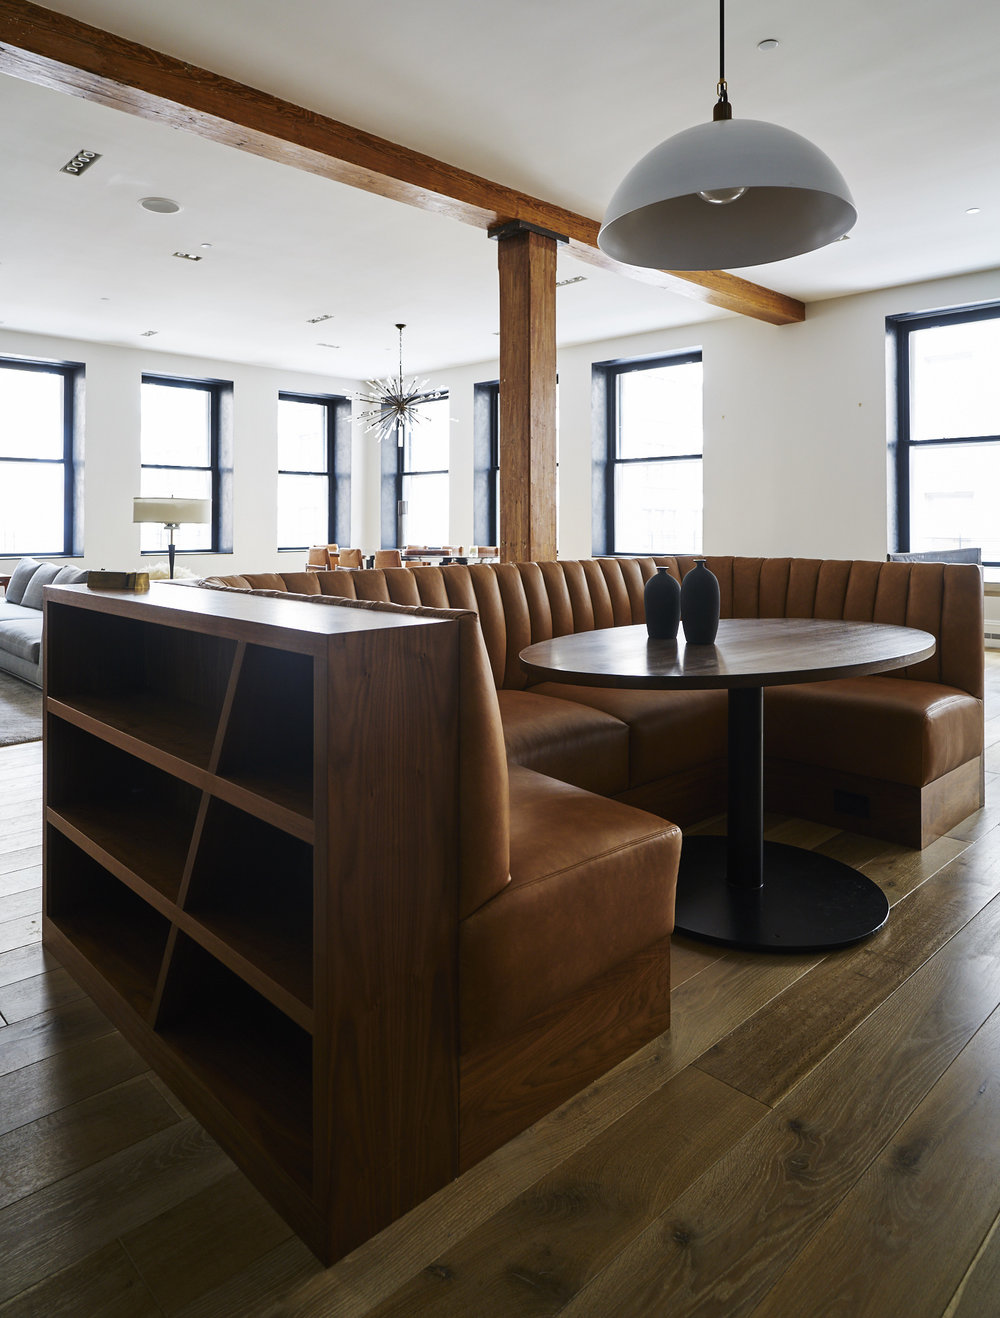 Modern Soho loft custom kitchen leather and wood banquette